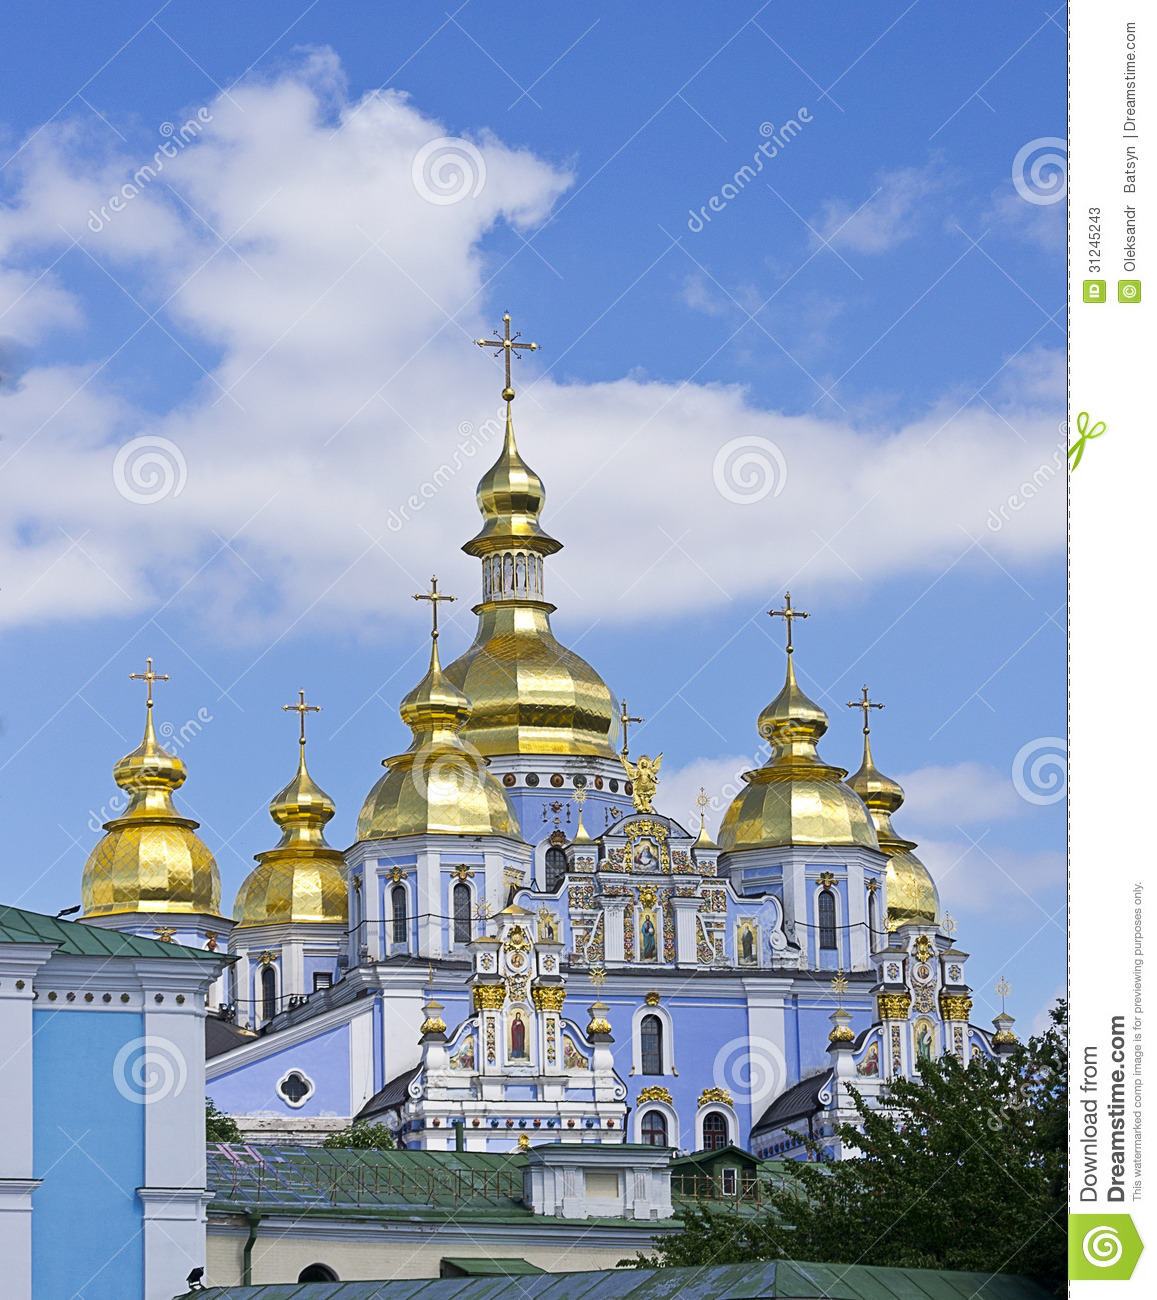 Celebrity stock photos ukraine